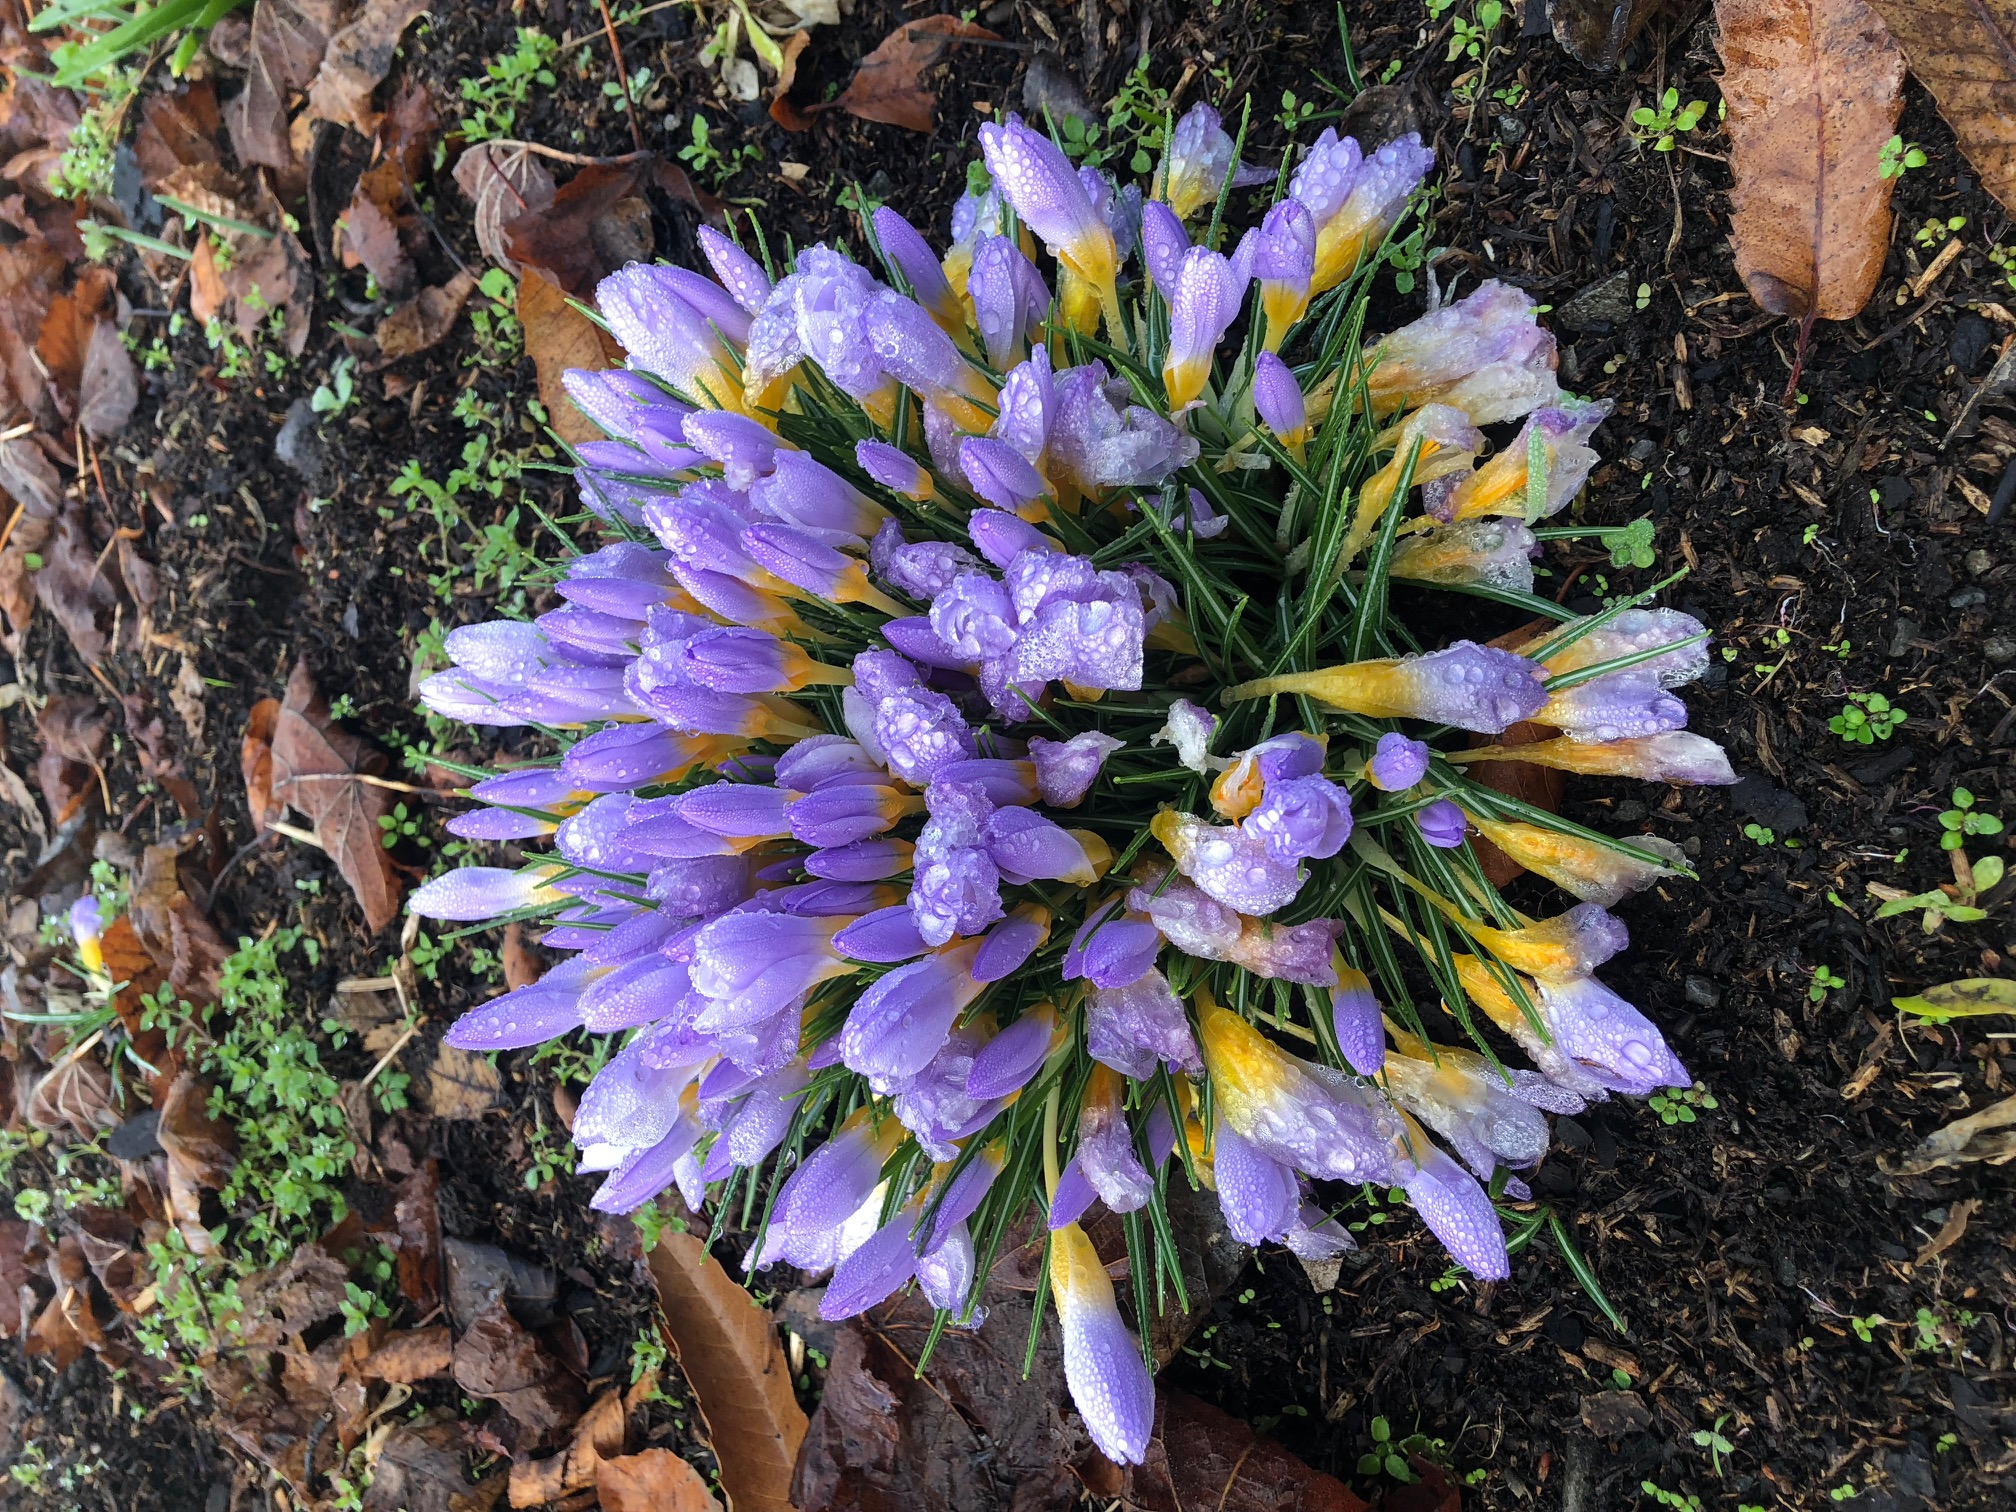 Crocus sp. S Pickford